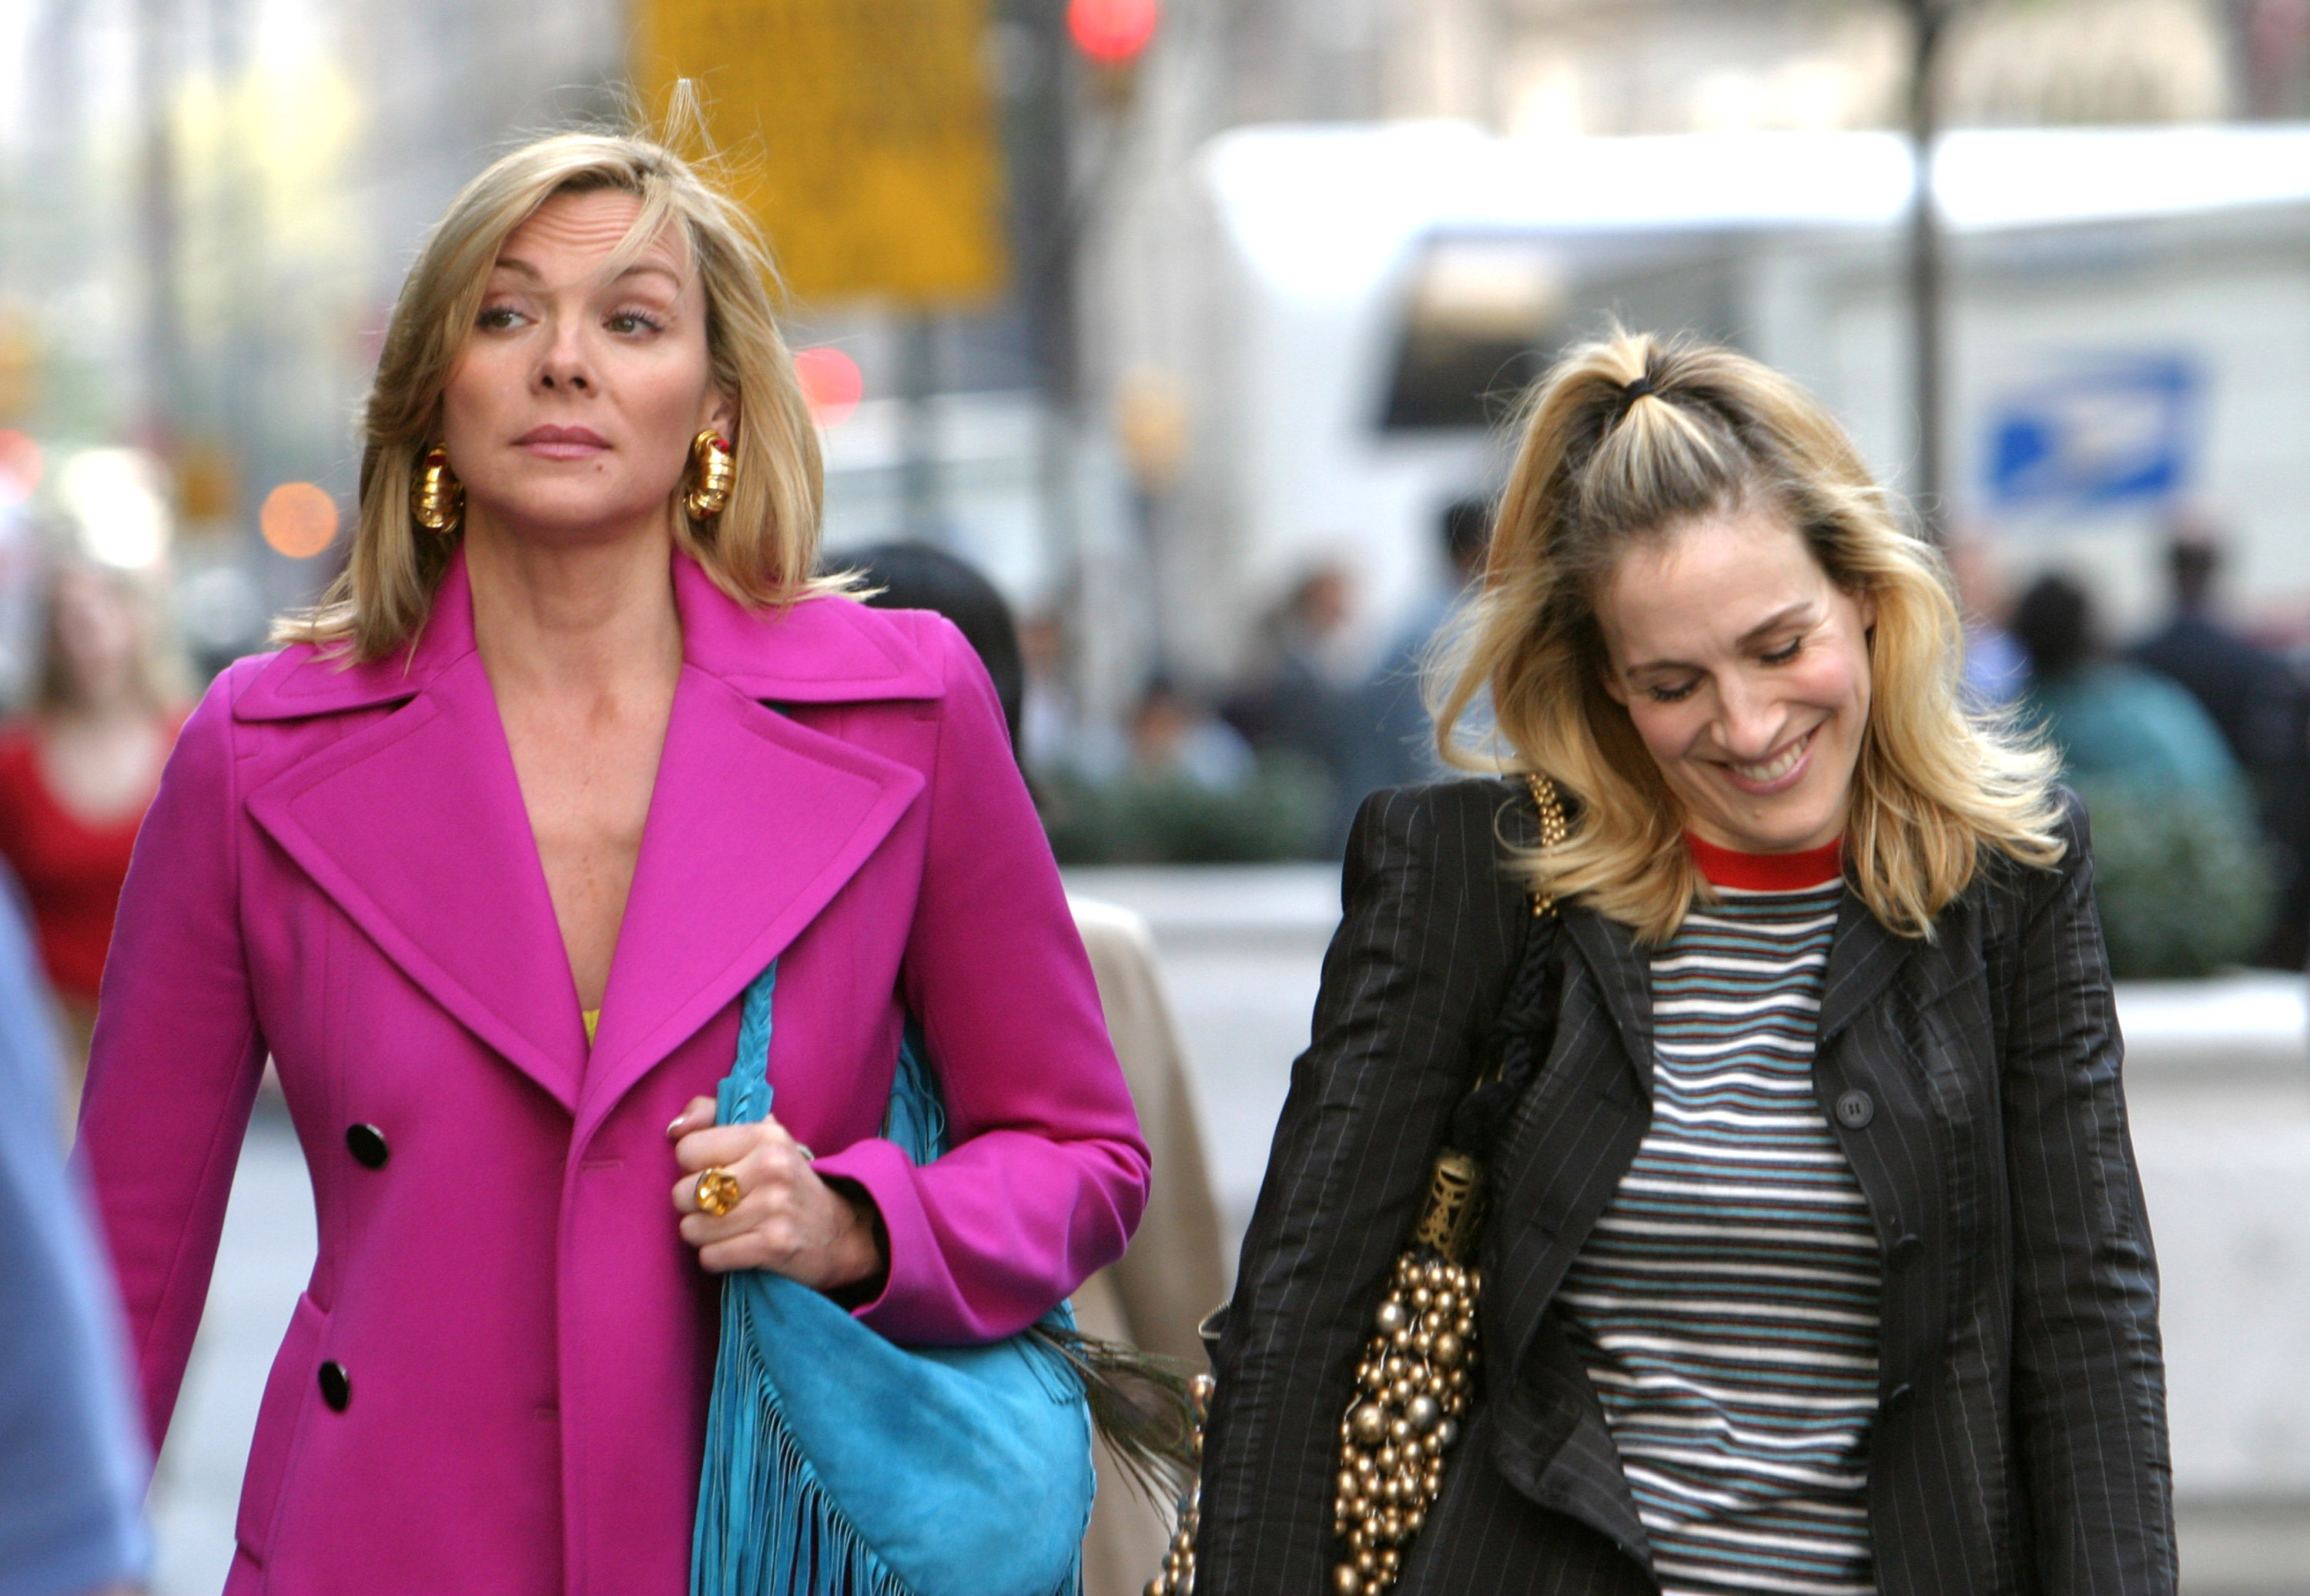 Kim Cattrall and Sarah Jessica Parker during Kim Cattrall and Sarah Jessica Parker On Location For  Sex And The City  at Saks Fifth Ave in New York, New York, United States.